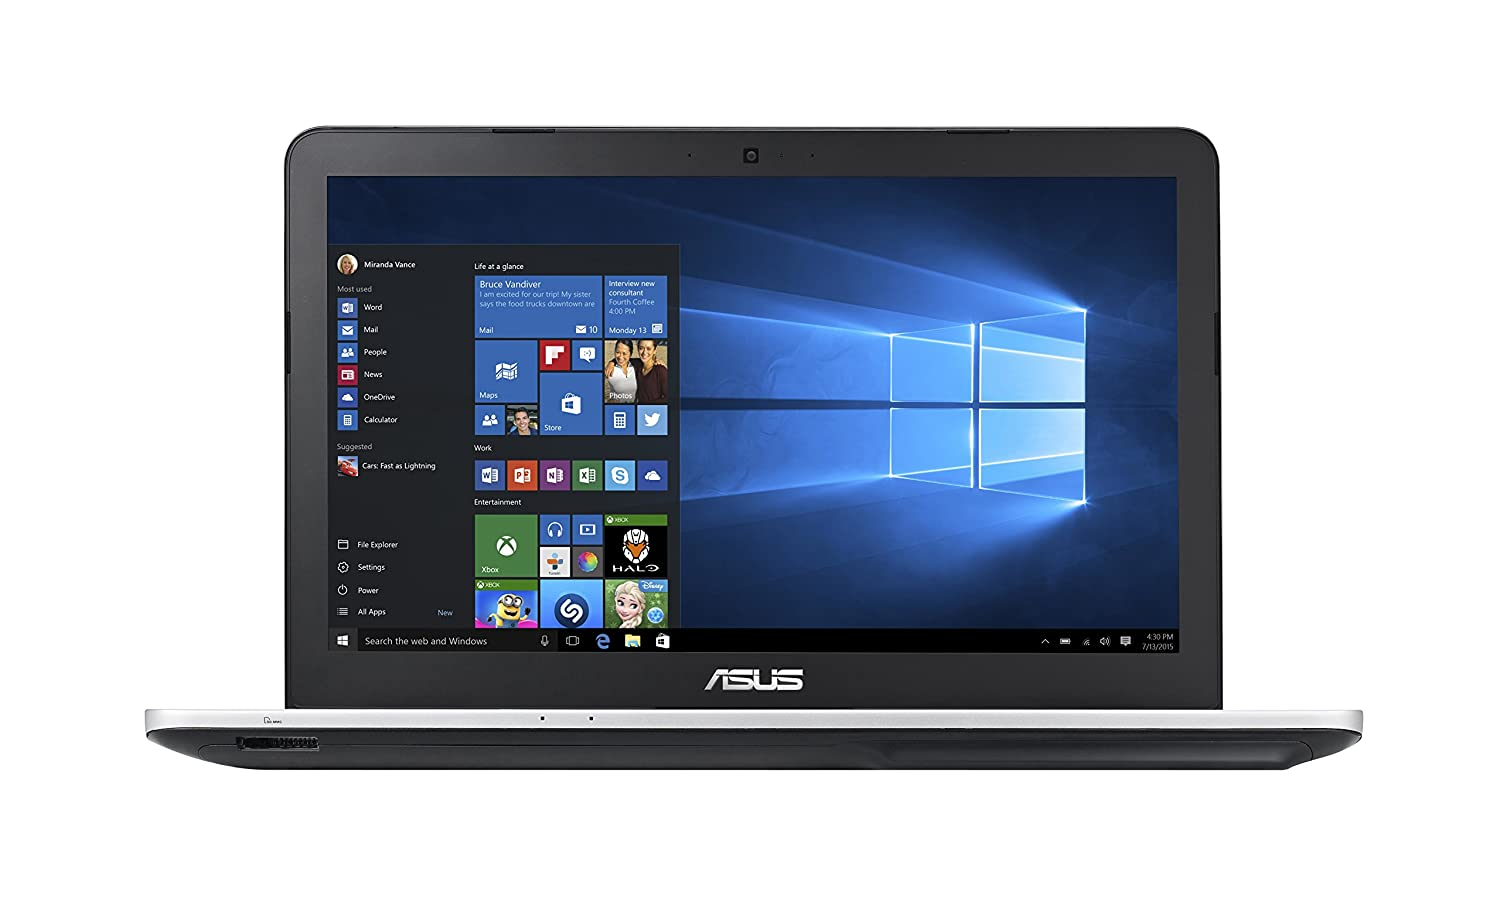 Asus R555JB Windows 8 Driver